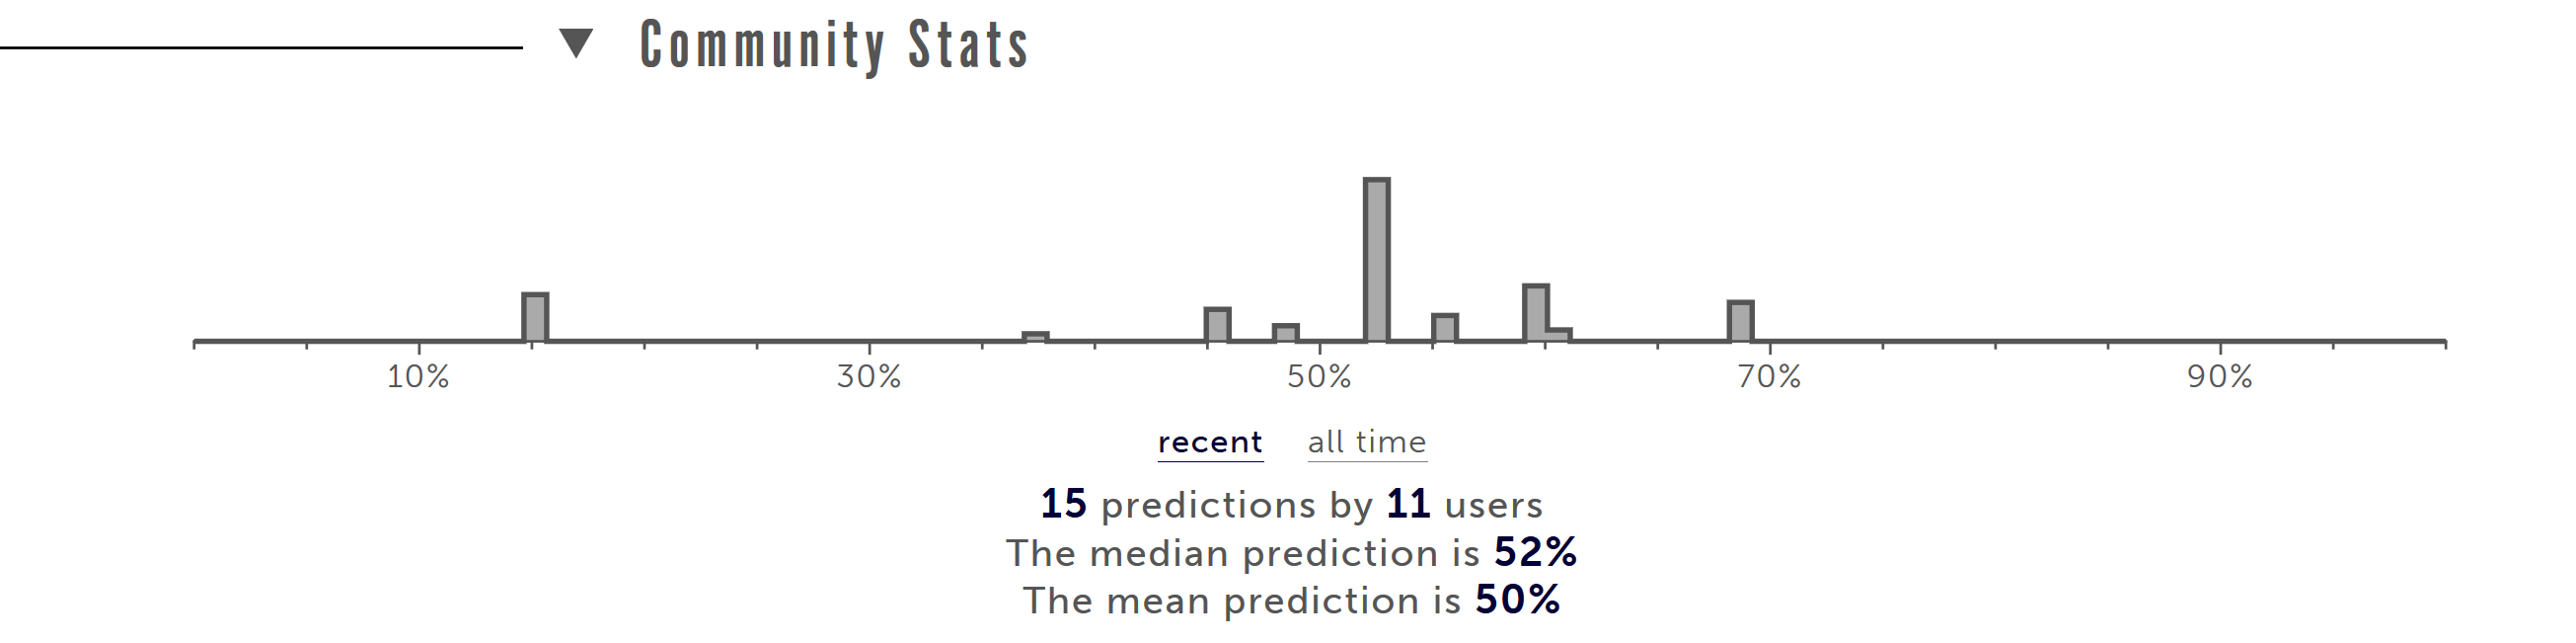 Picture showing the community statistics for the just-mentioned question. Shows Metaculus community with a median prediction of 52% and a mean prediction of 50%.